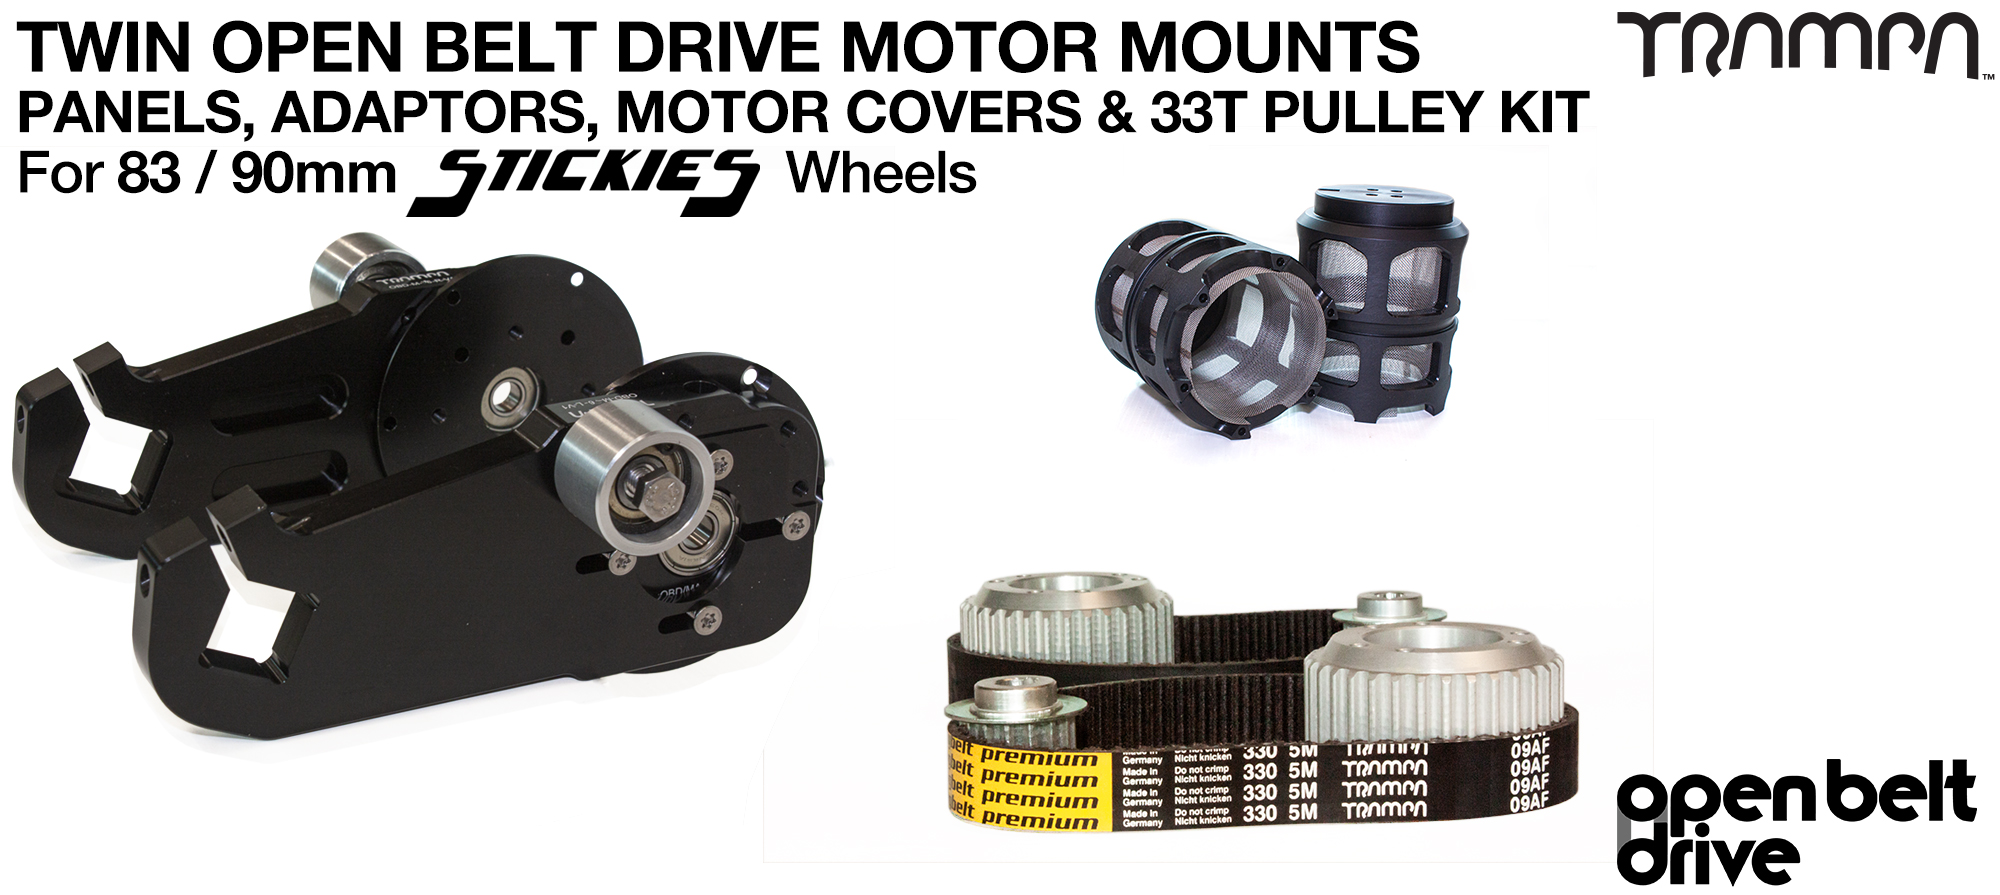 66T OBD Motor Mount with 33 / 37T Pulley kit & Motor Filters - TWIN